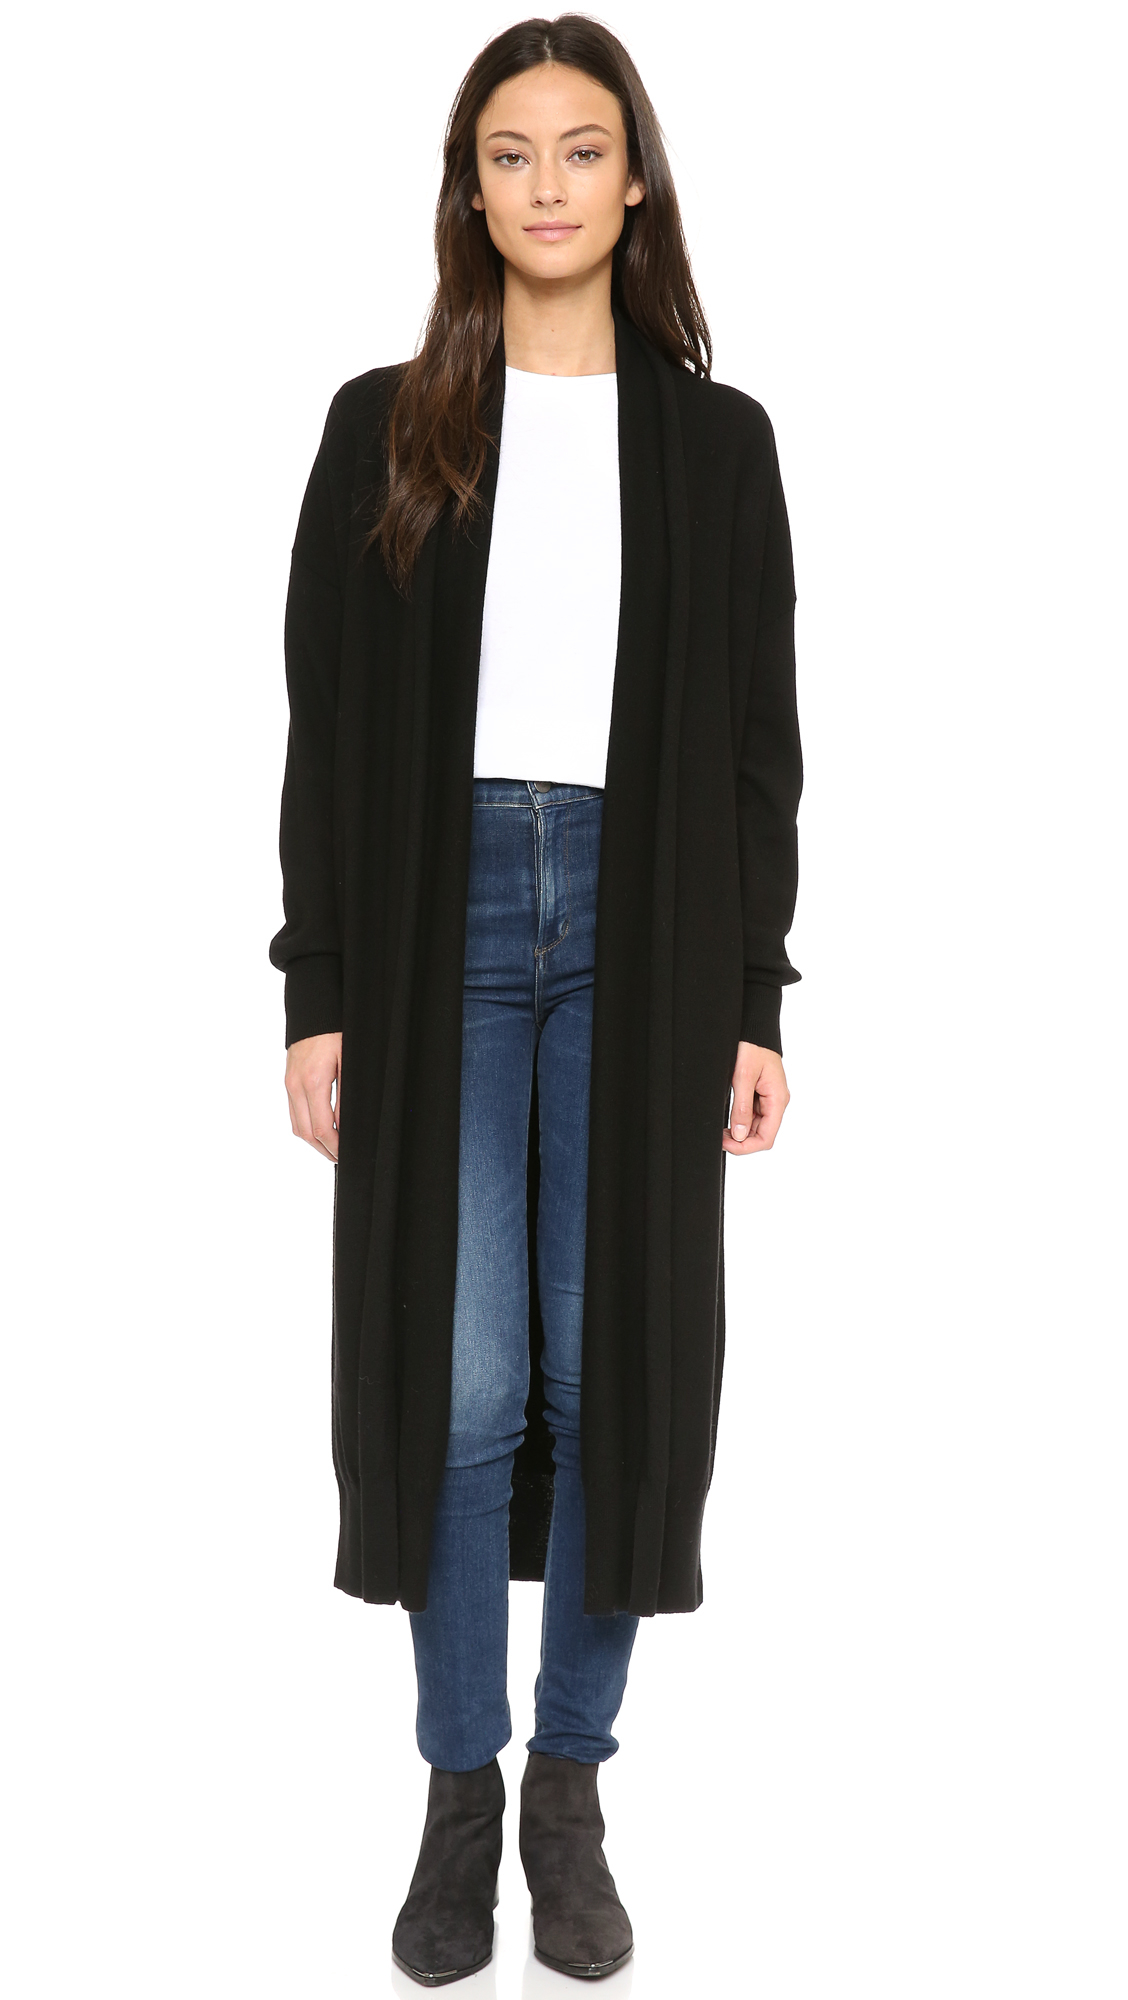 Dkny Open Front Cardigan Coat in Black | Lyst